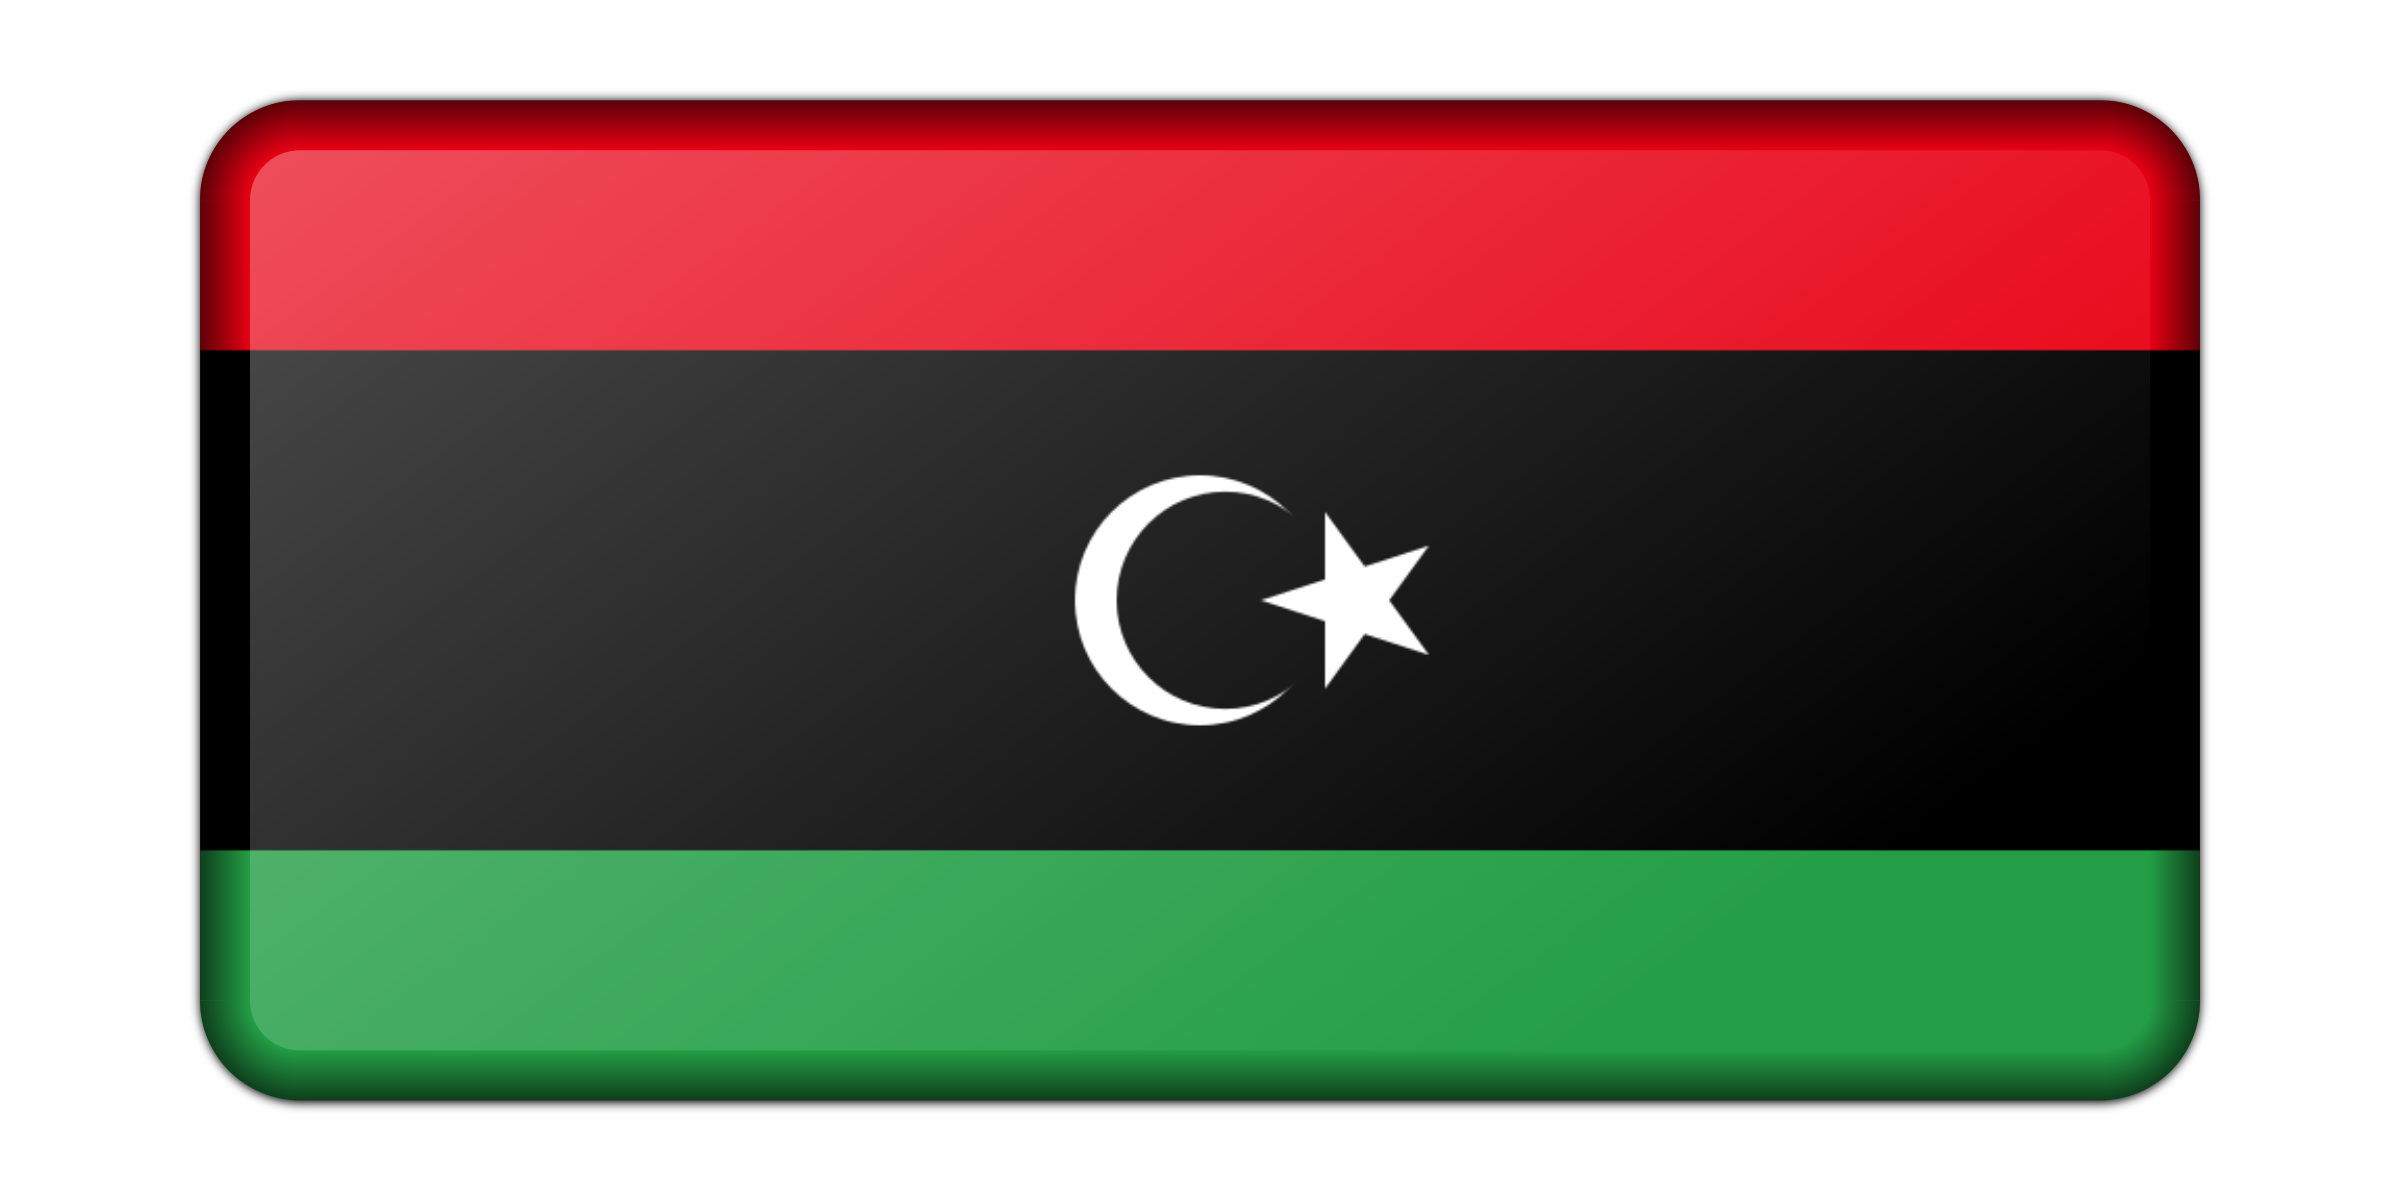 Libya flag (bevelled) by Firkin